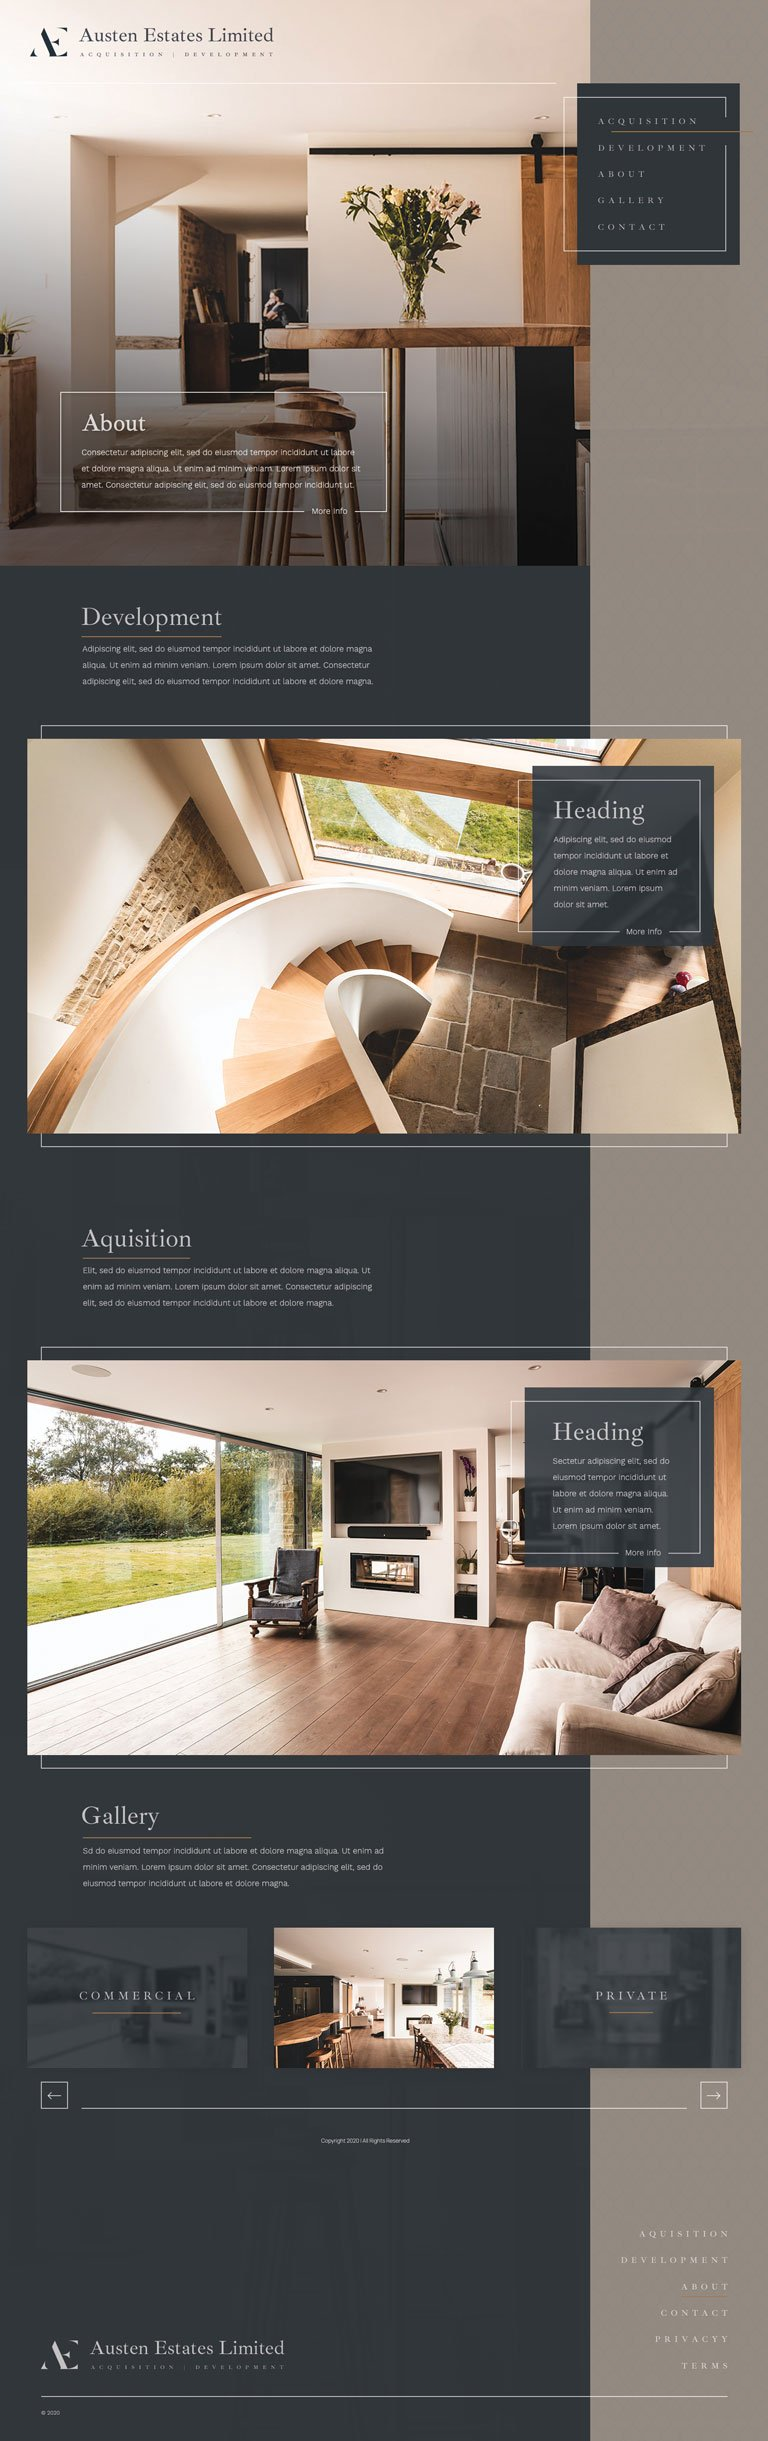 Web Designer Examples Project